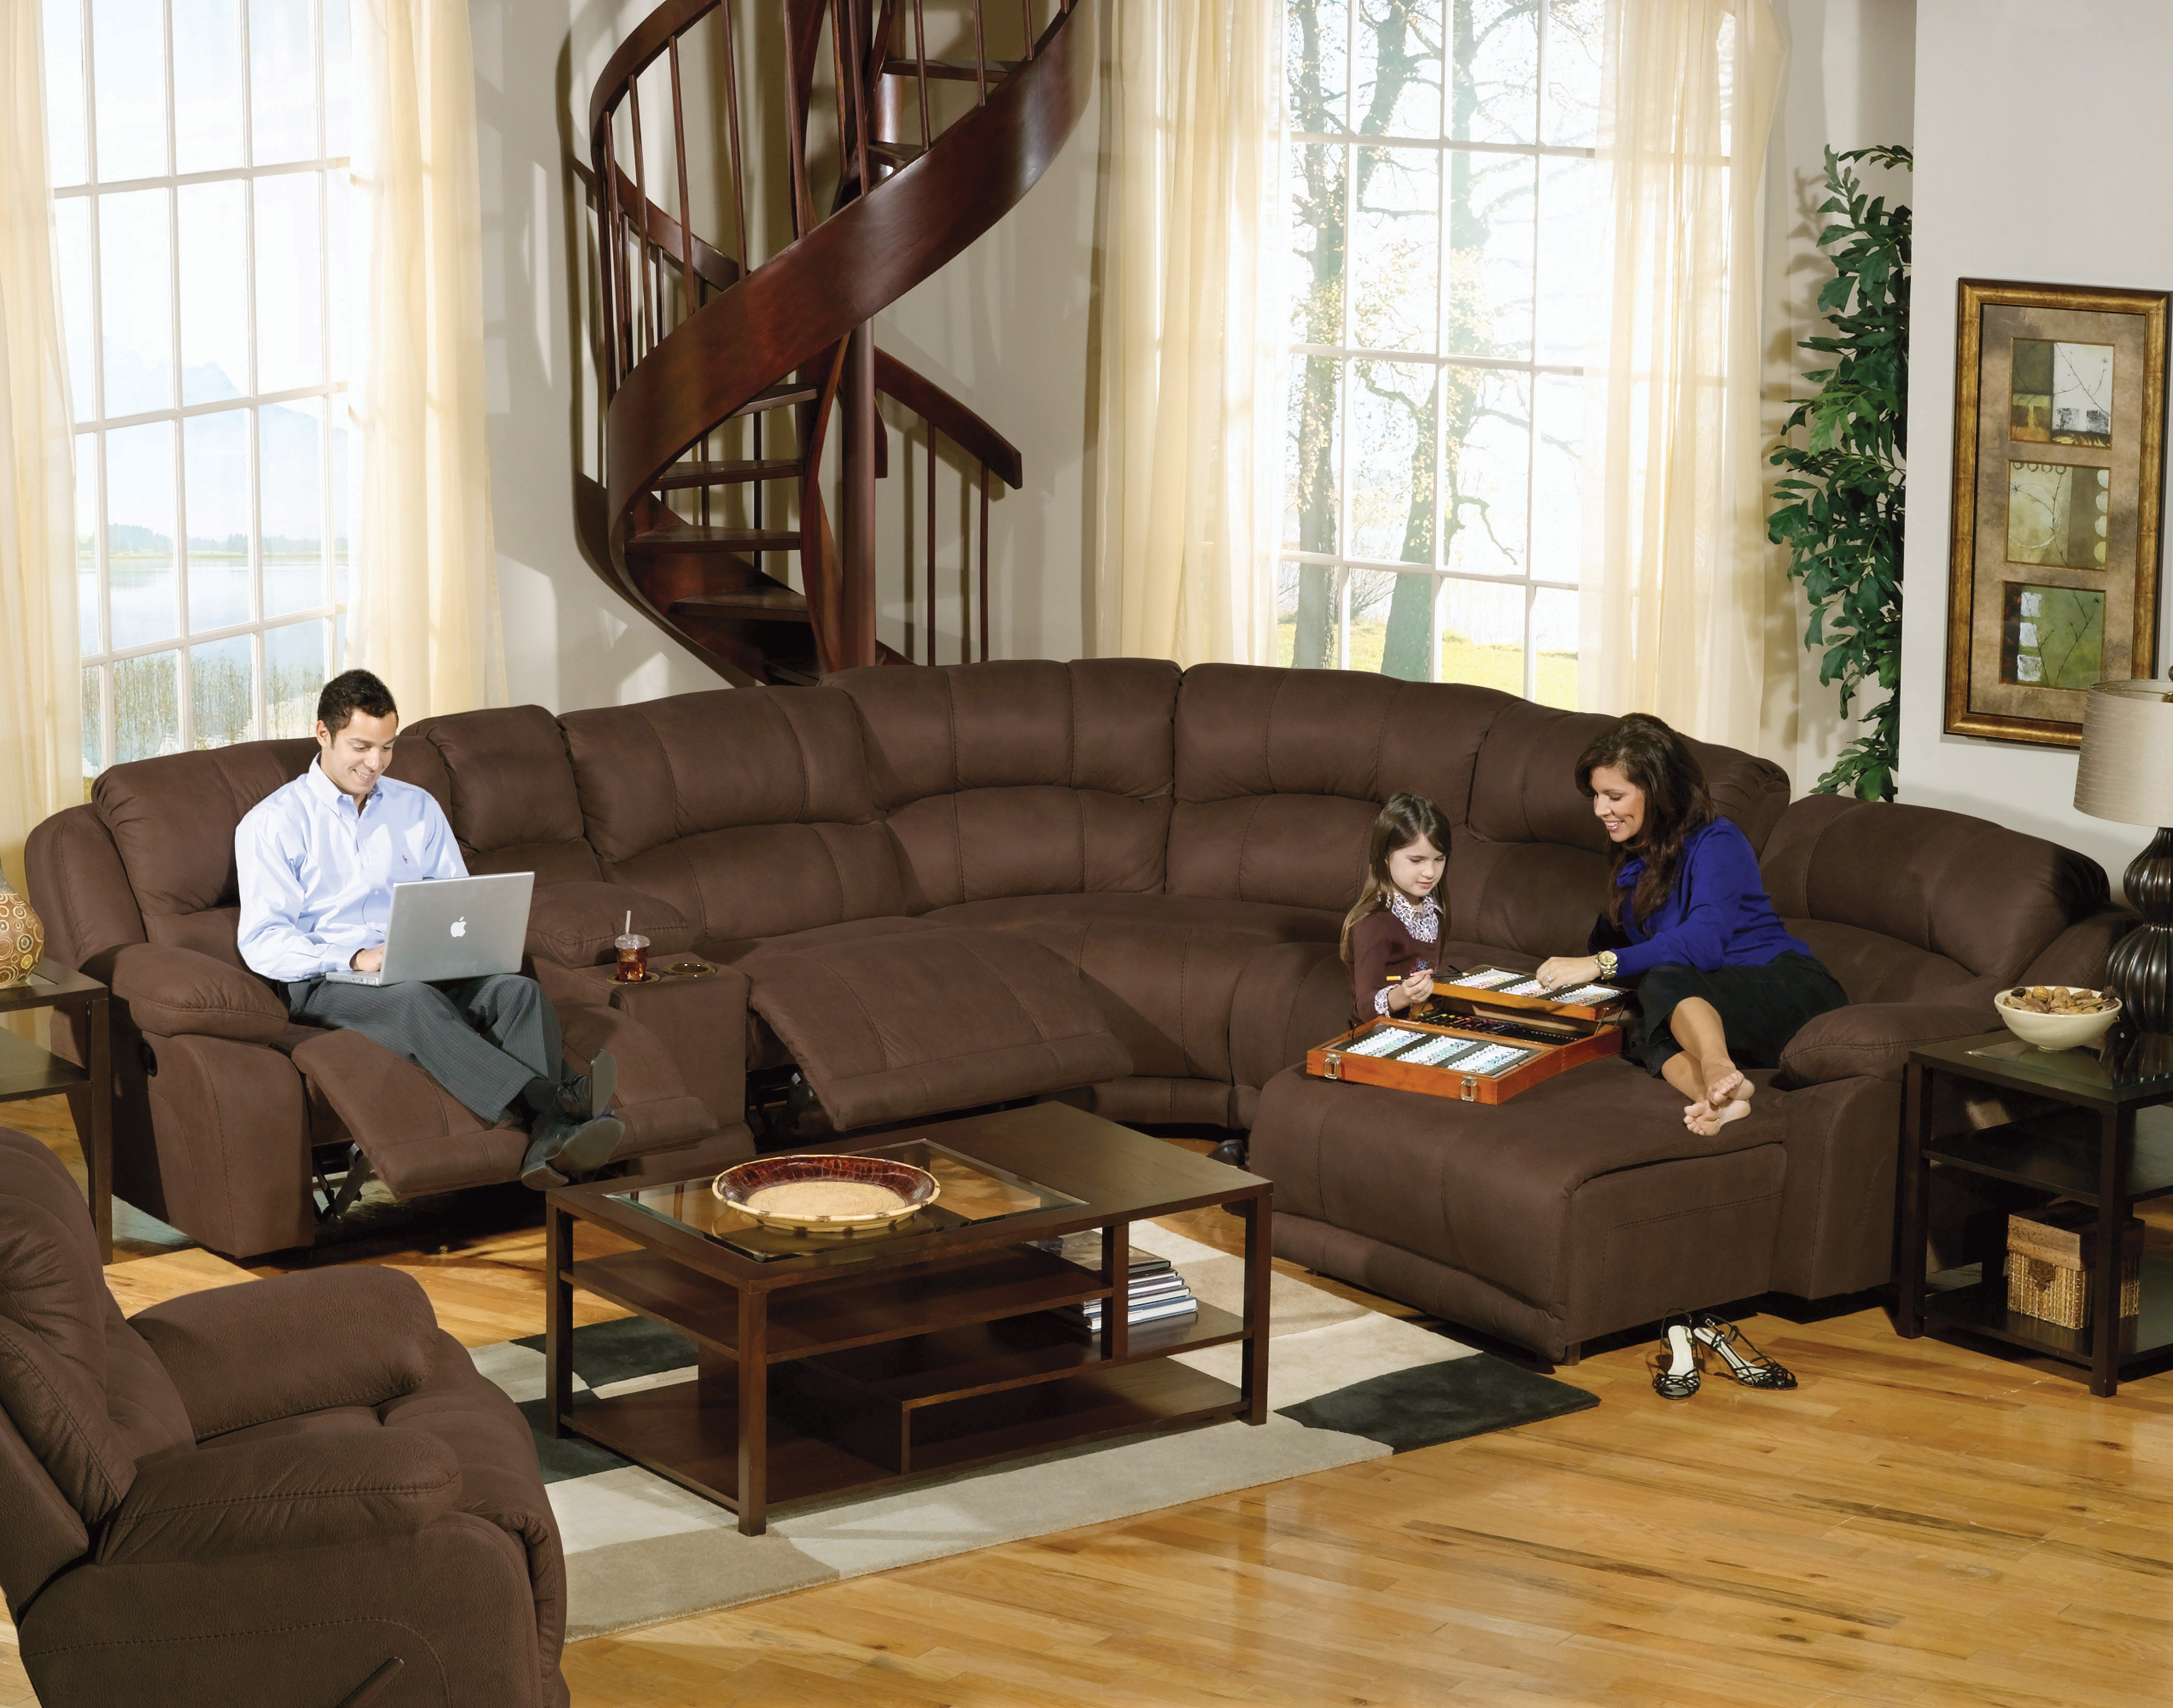 Elegant Large Sectional Sofas With Recliners 94 In Curved Pertaining To Curved Sectional Sofa With Recliner (#8 of 12)